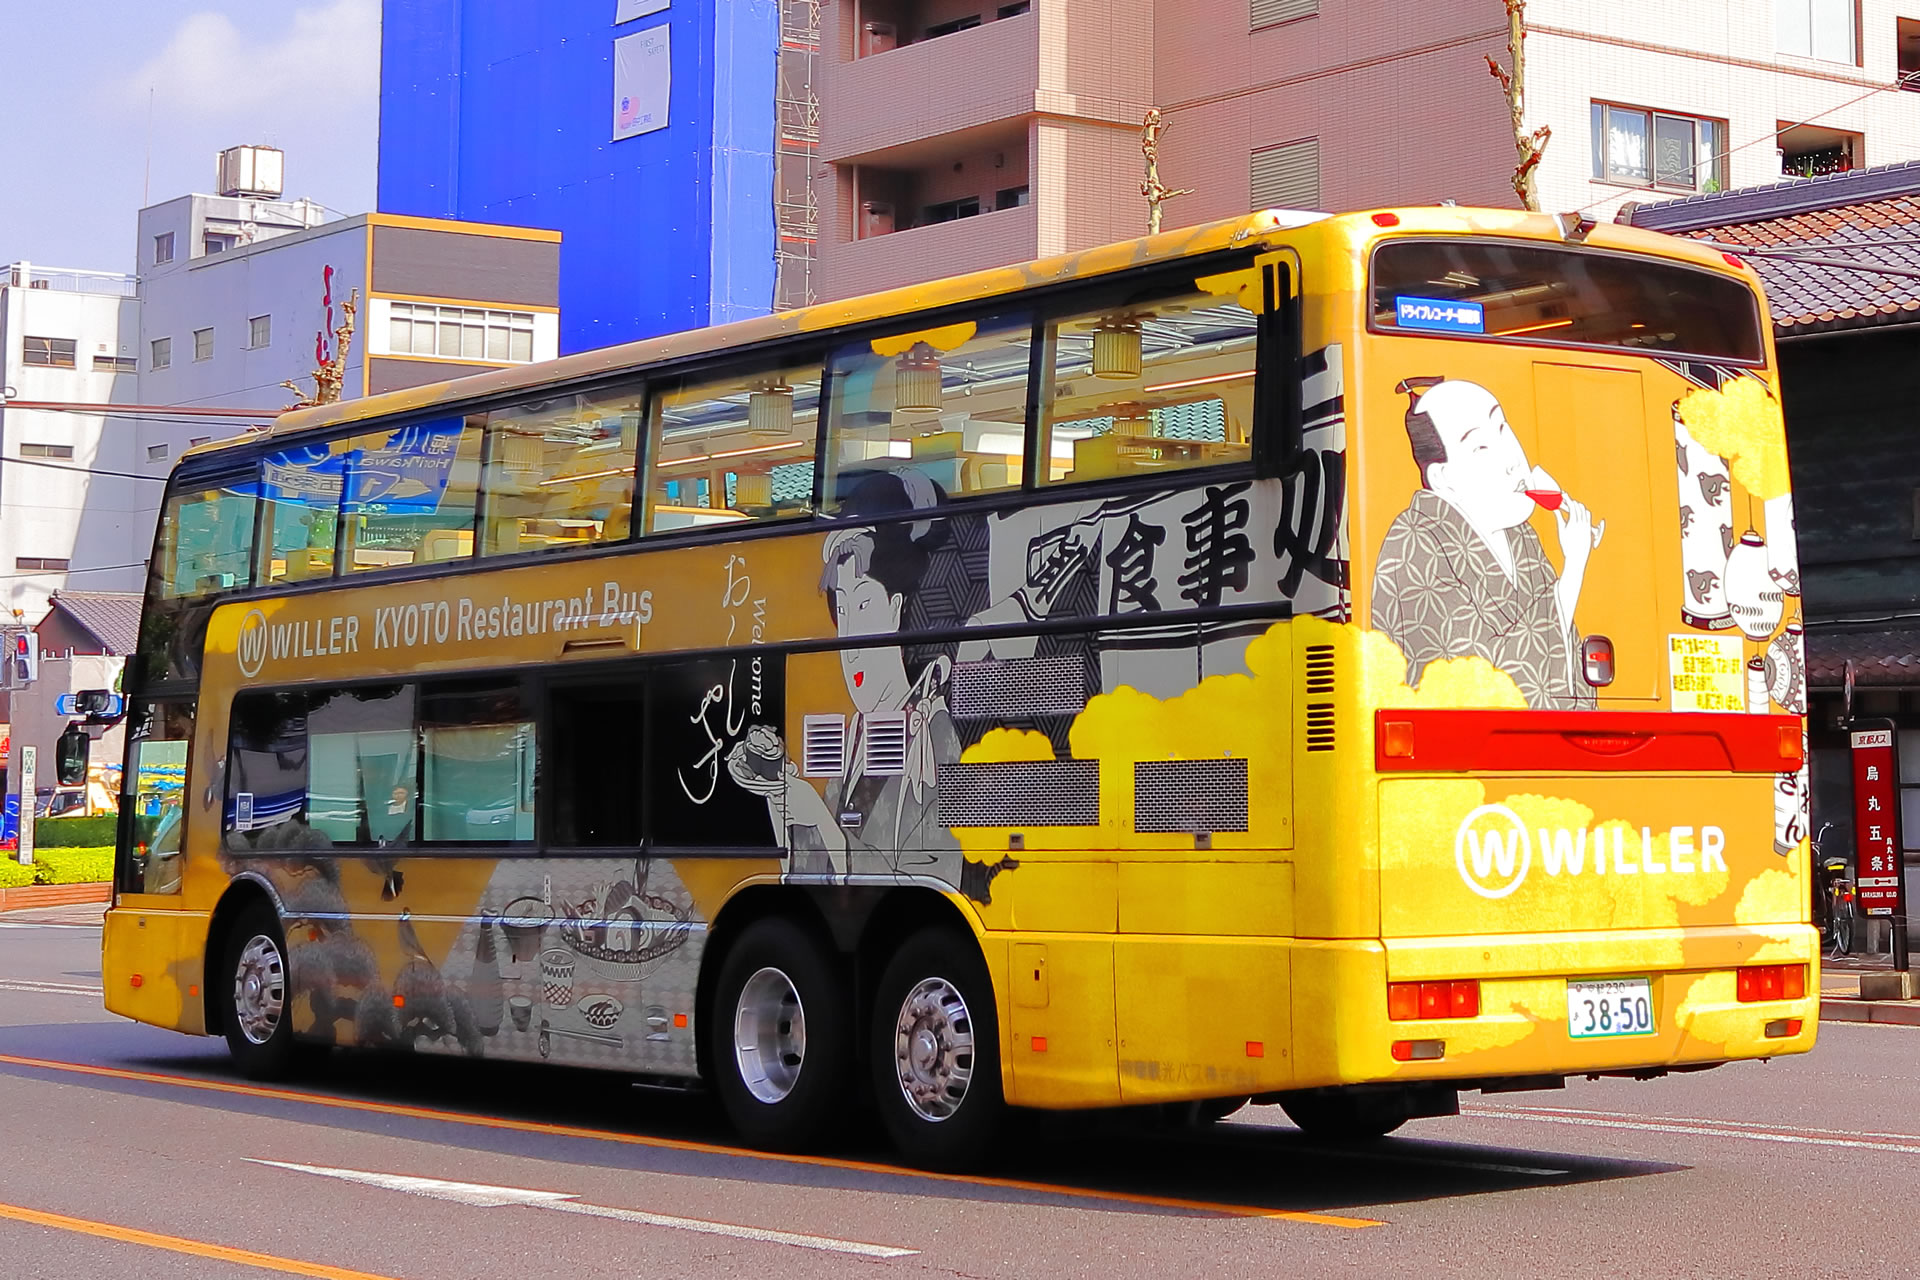 WILLER KYOTO Restaurant BUS